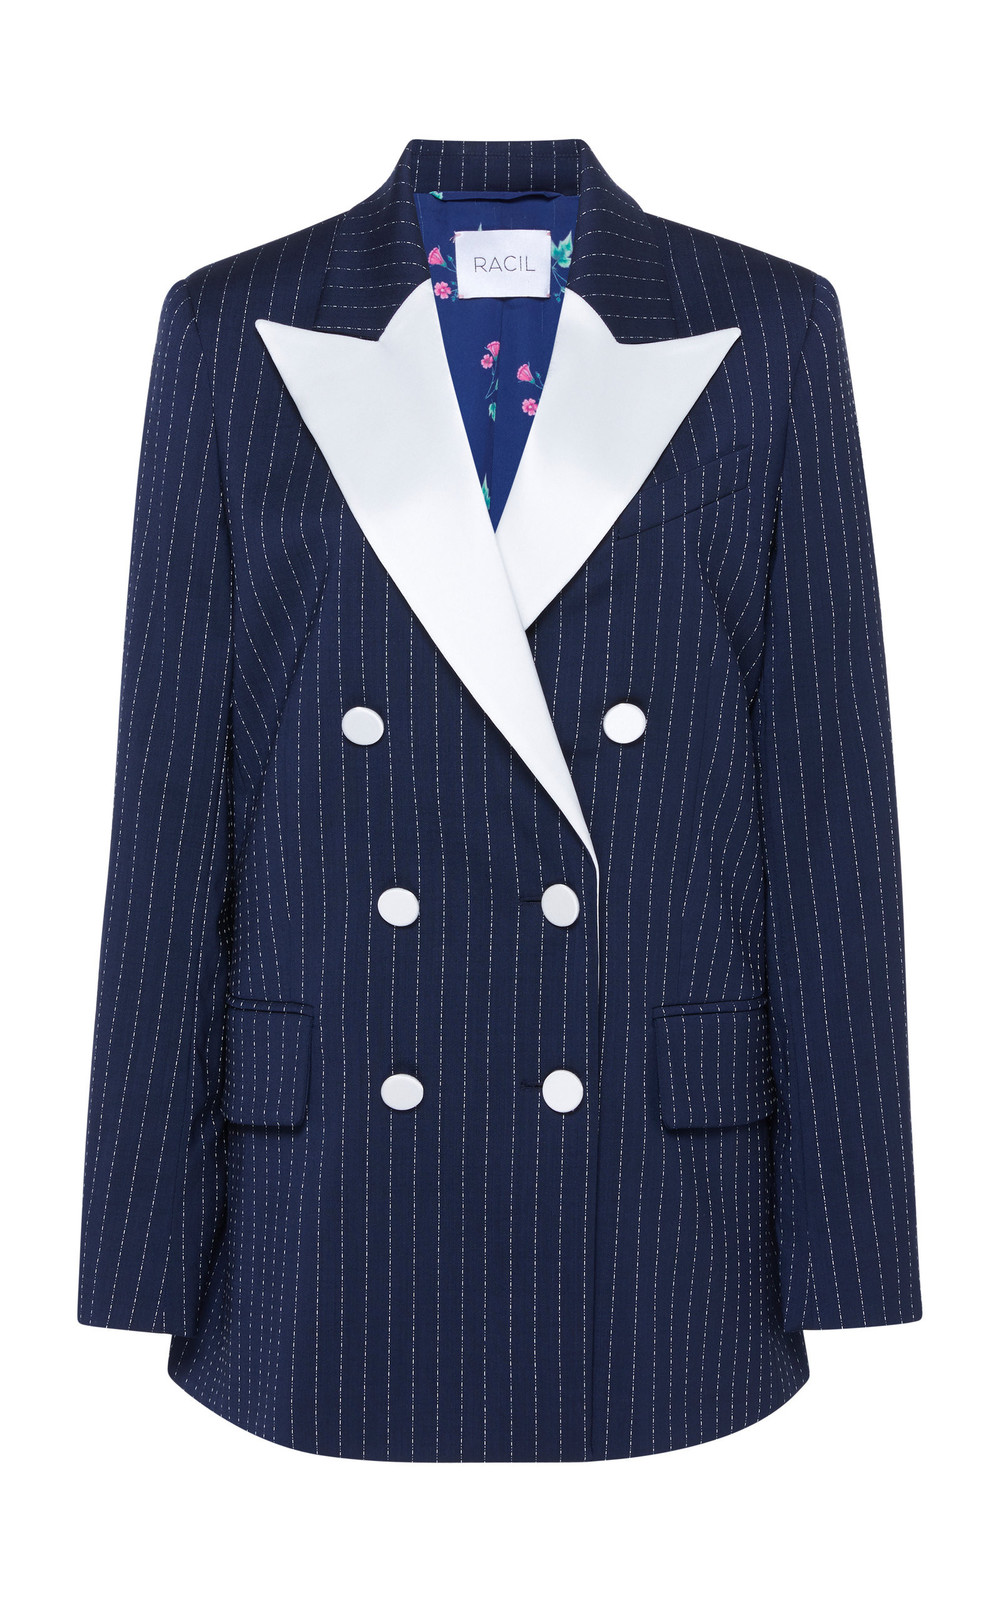 Racil Casablanca Double Breasted Wool Blazer in navy